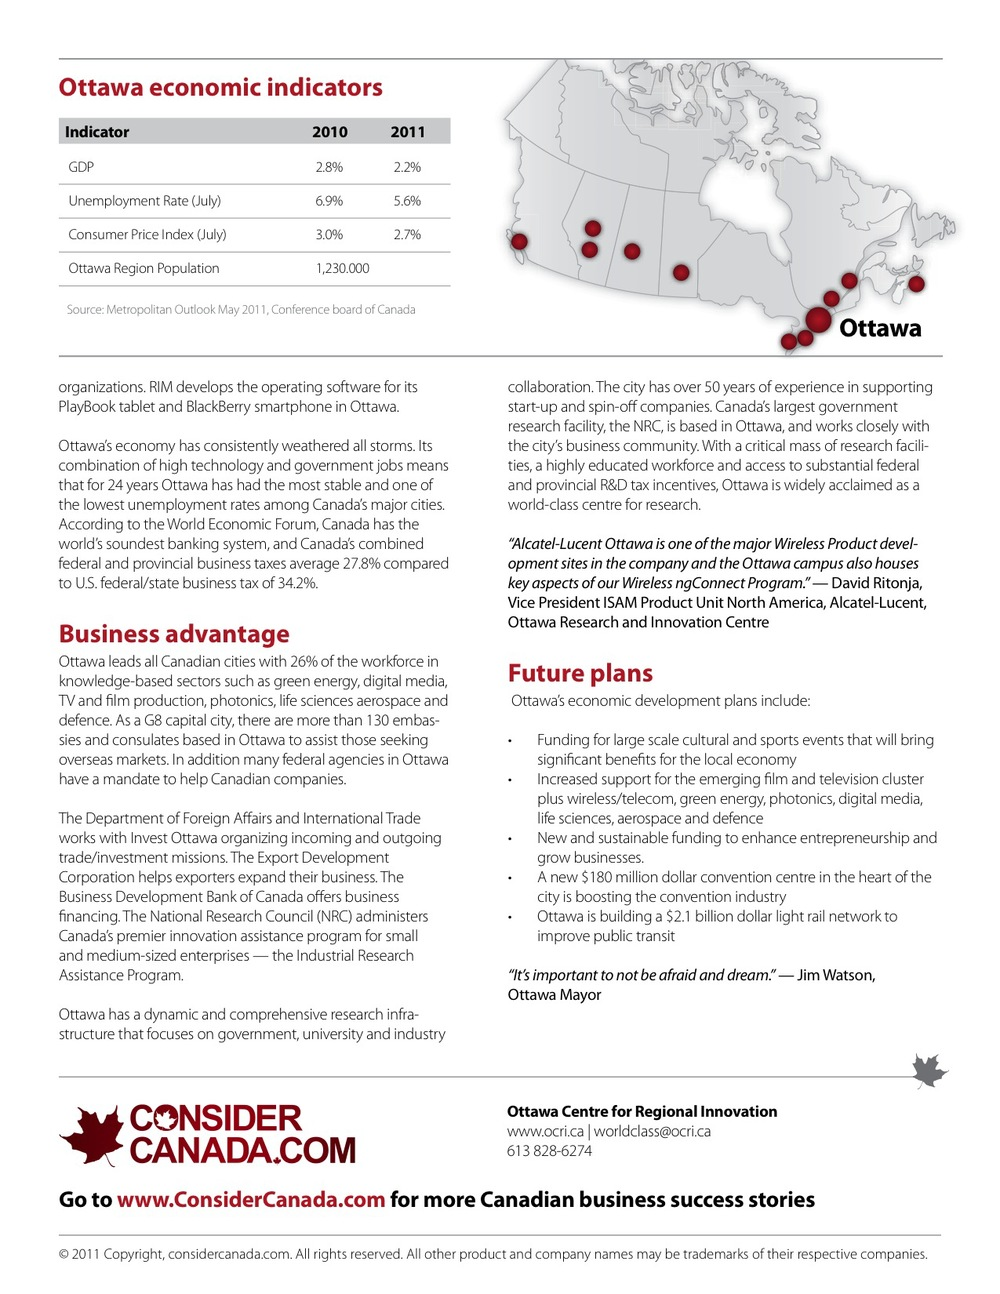 2011_09_ConsiderCanada_CityOverview_Ottawa_VIEW-page2.jpg